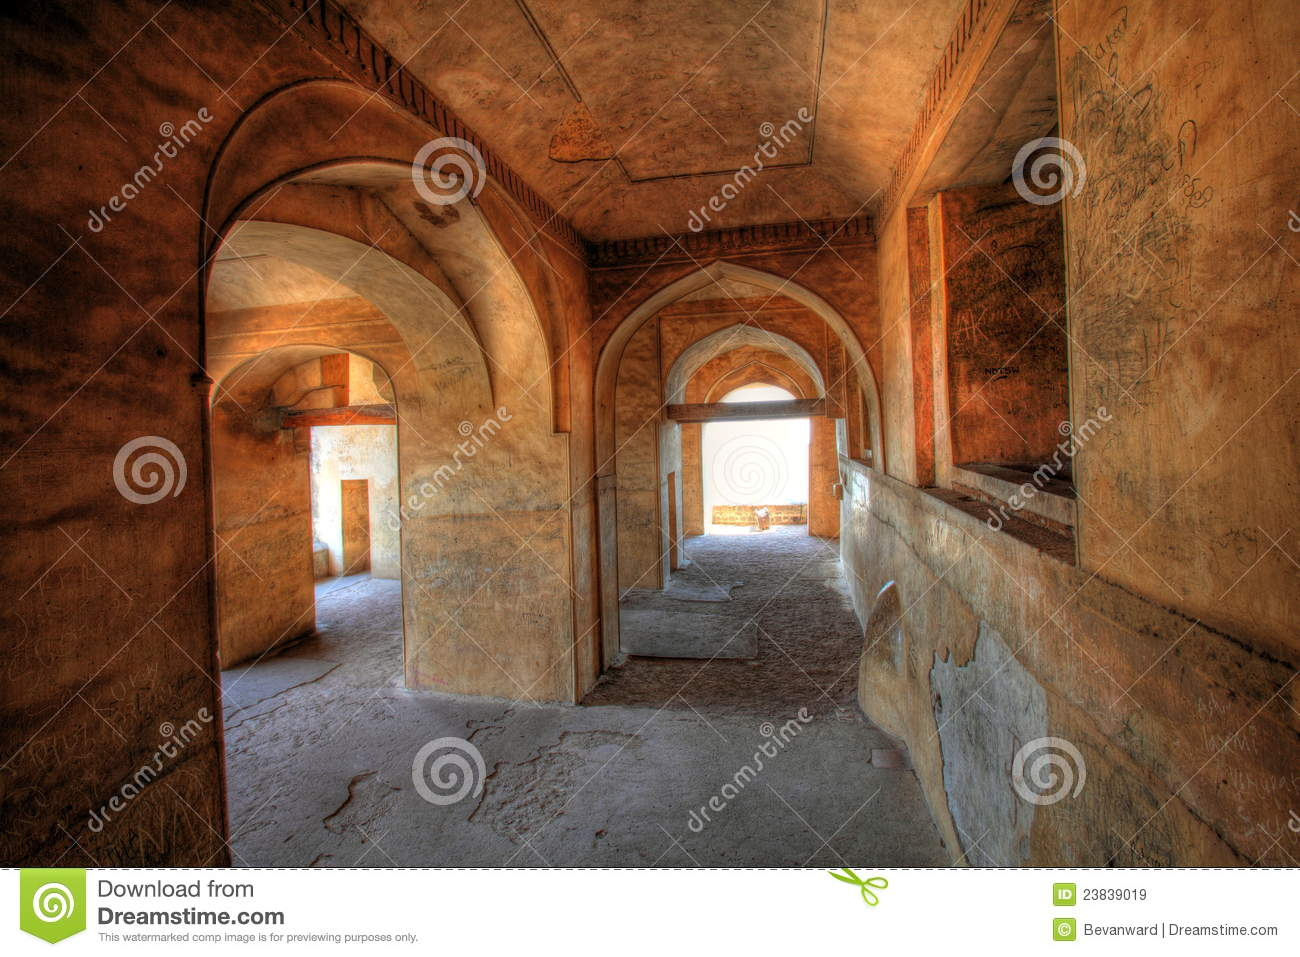 Dharbar Hall arches and detail, Golconda Fort